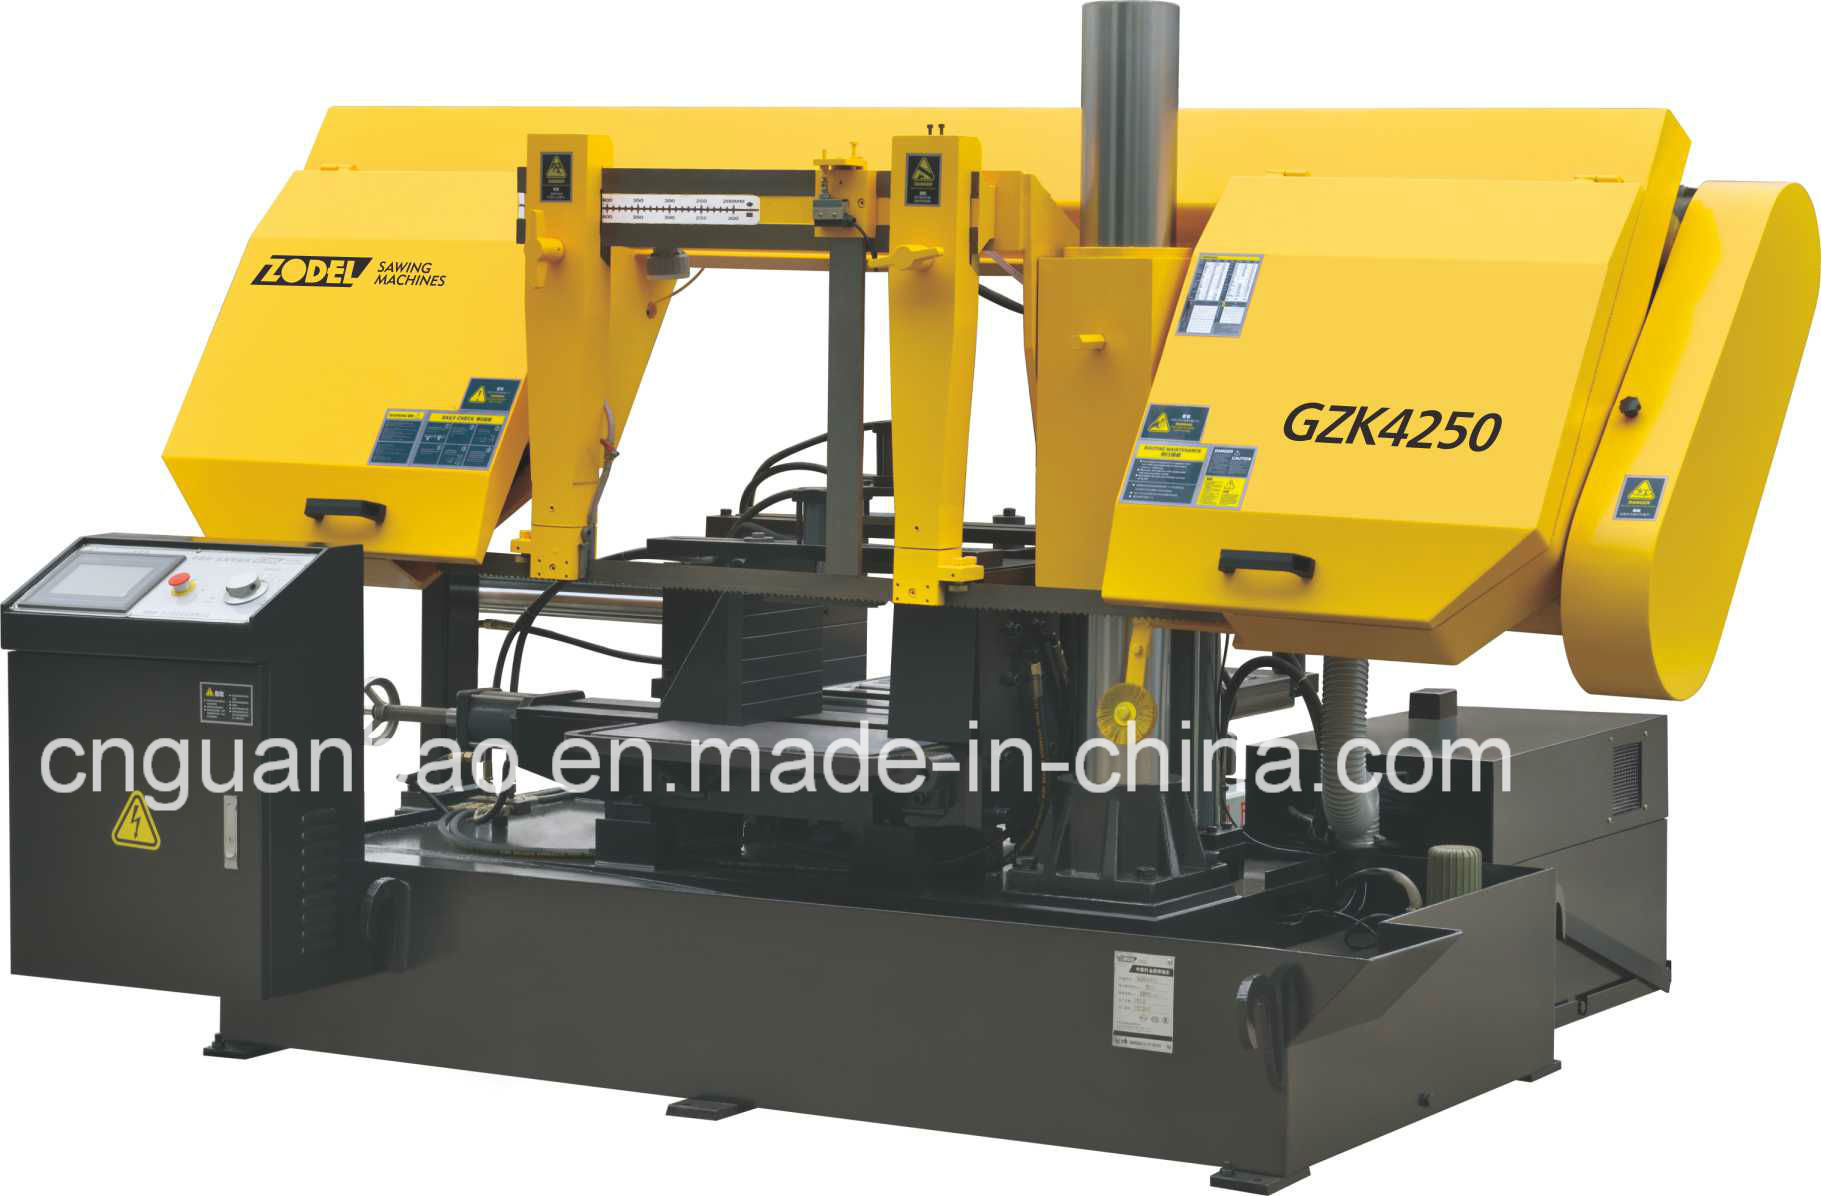 Automatic Band Saw Machine for Metal Cutting Gzk4250